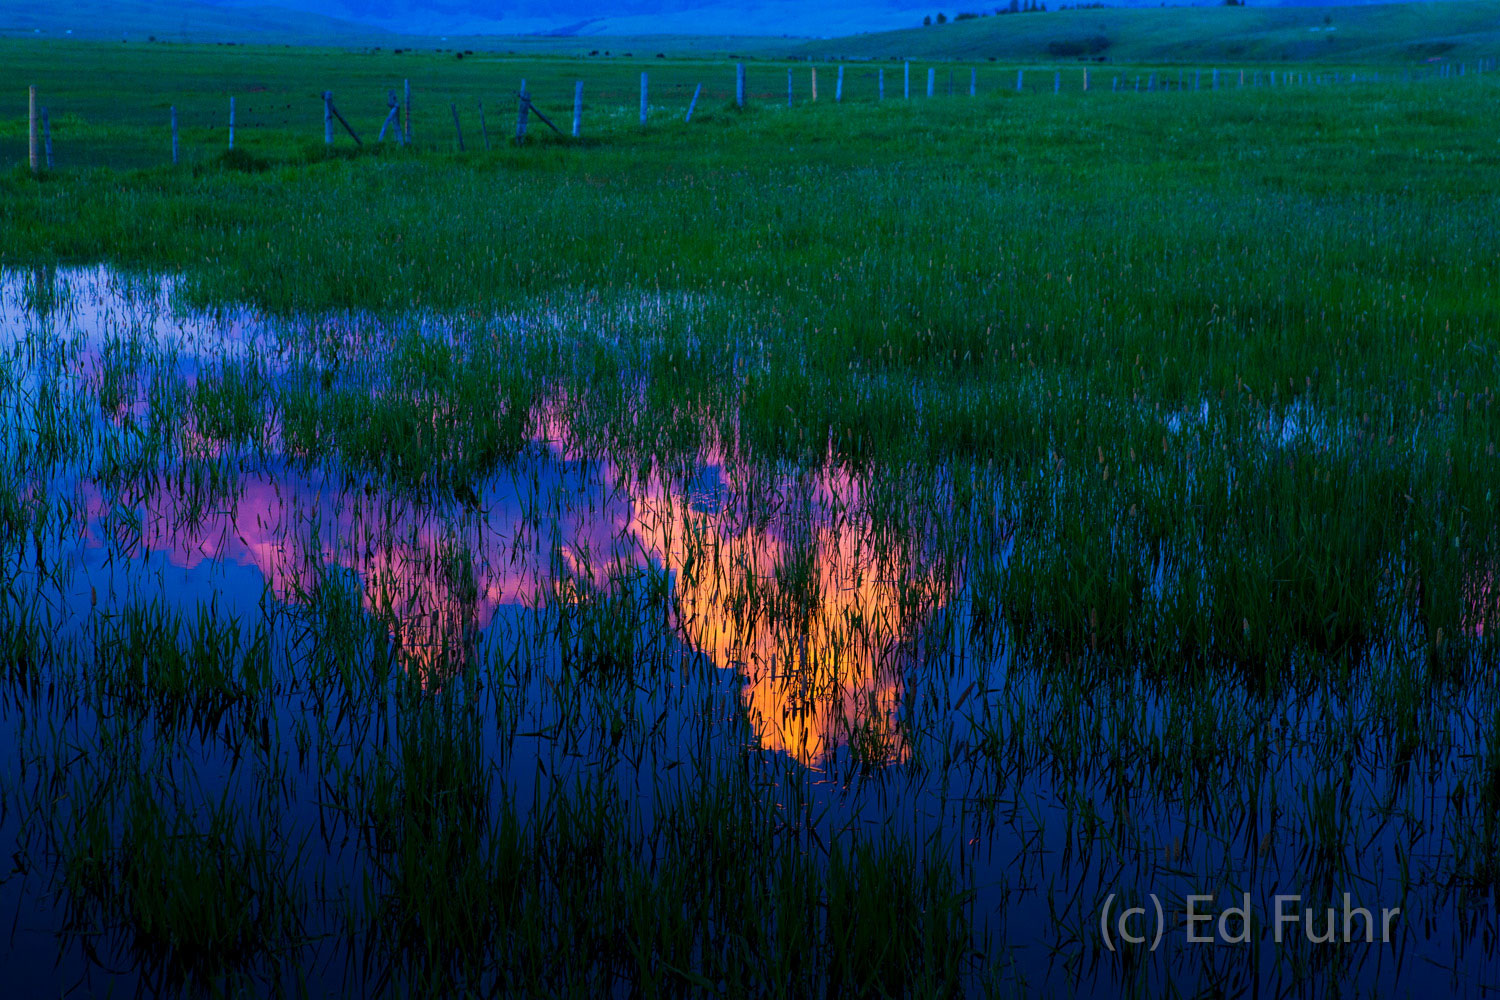 A spring pond of snow melt reflects the passing colors of dusk.